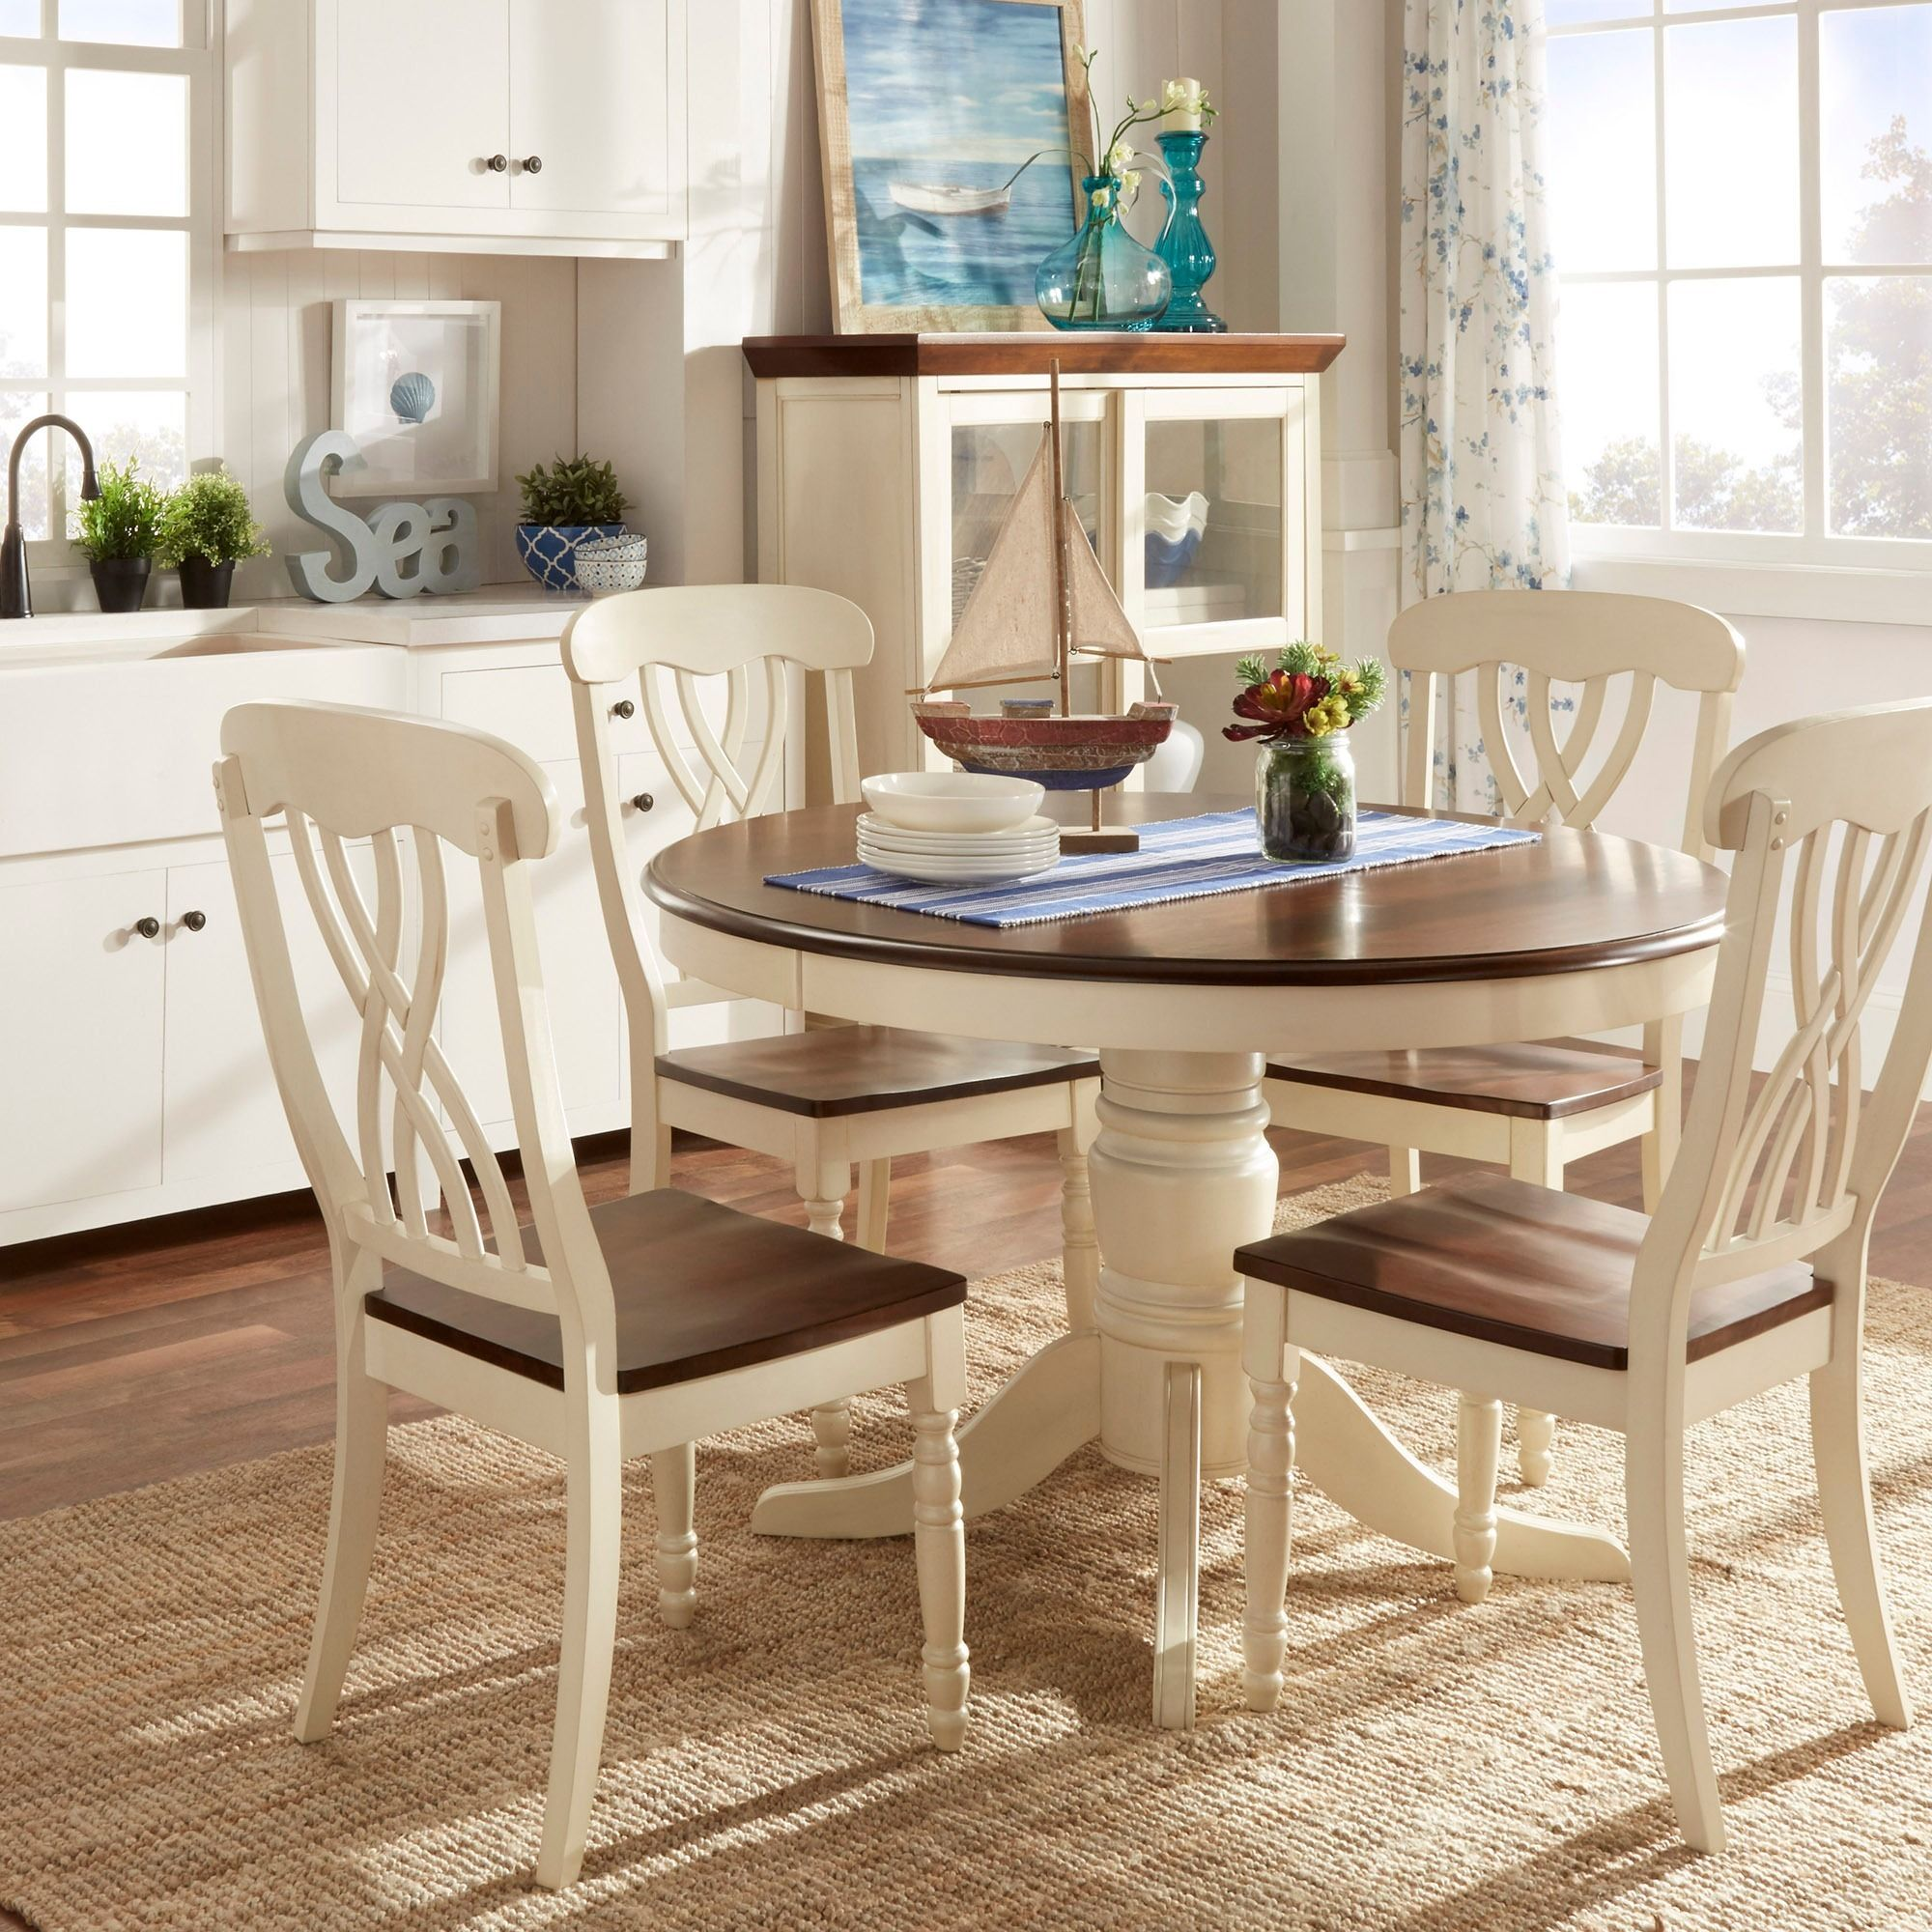 The design of this 5-piece dining set from Mackenzie captures the ...